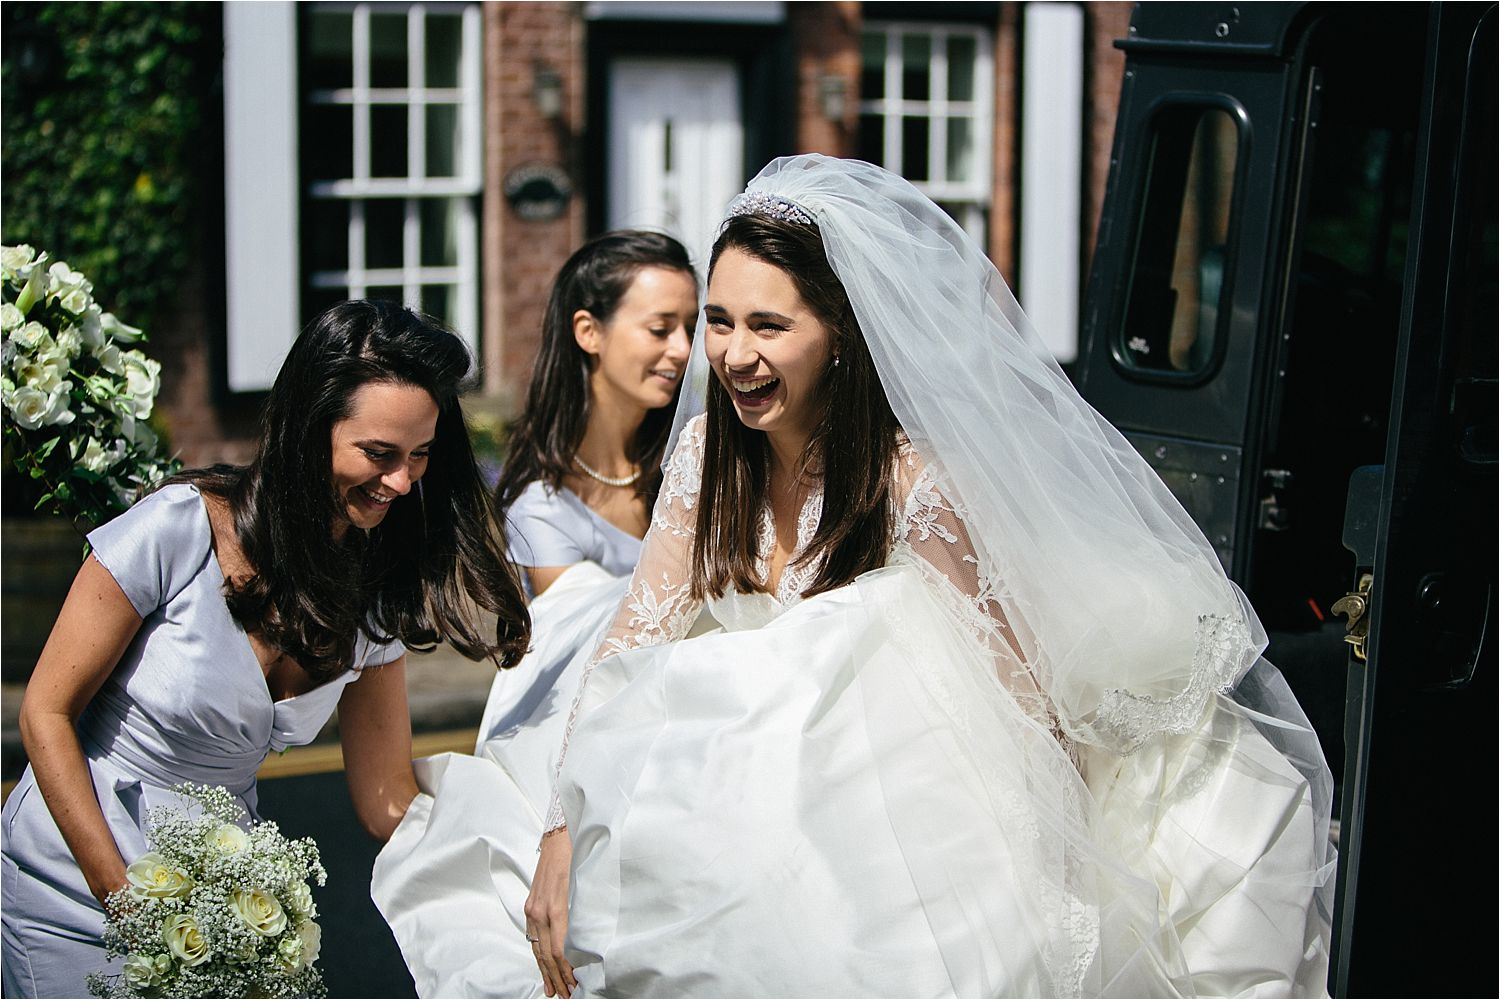 Bridesmaids help bride with her dress as she steps out of a Landrover Defender at St Peter's church in Prestbury